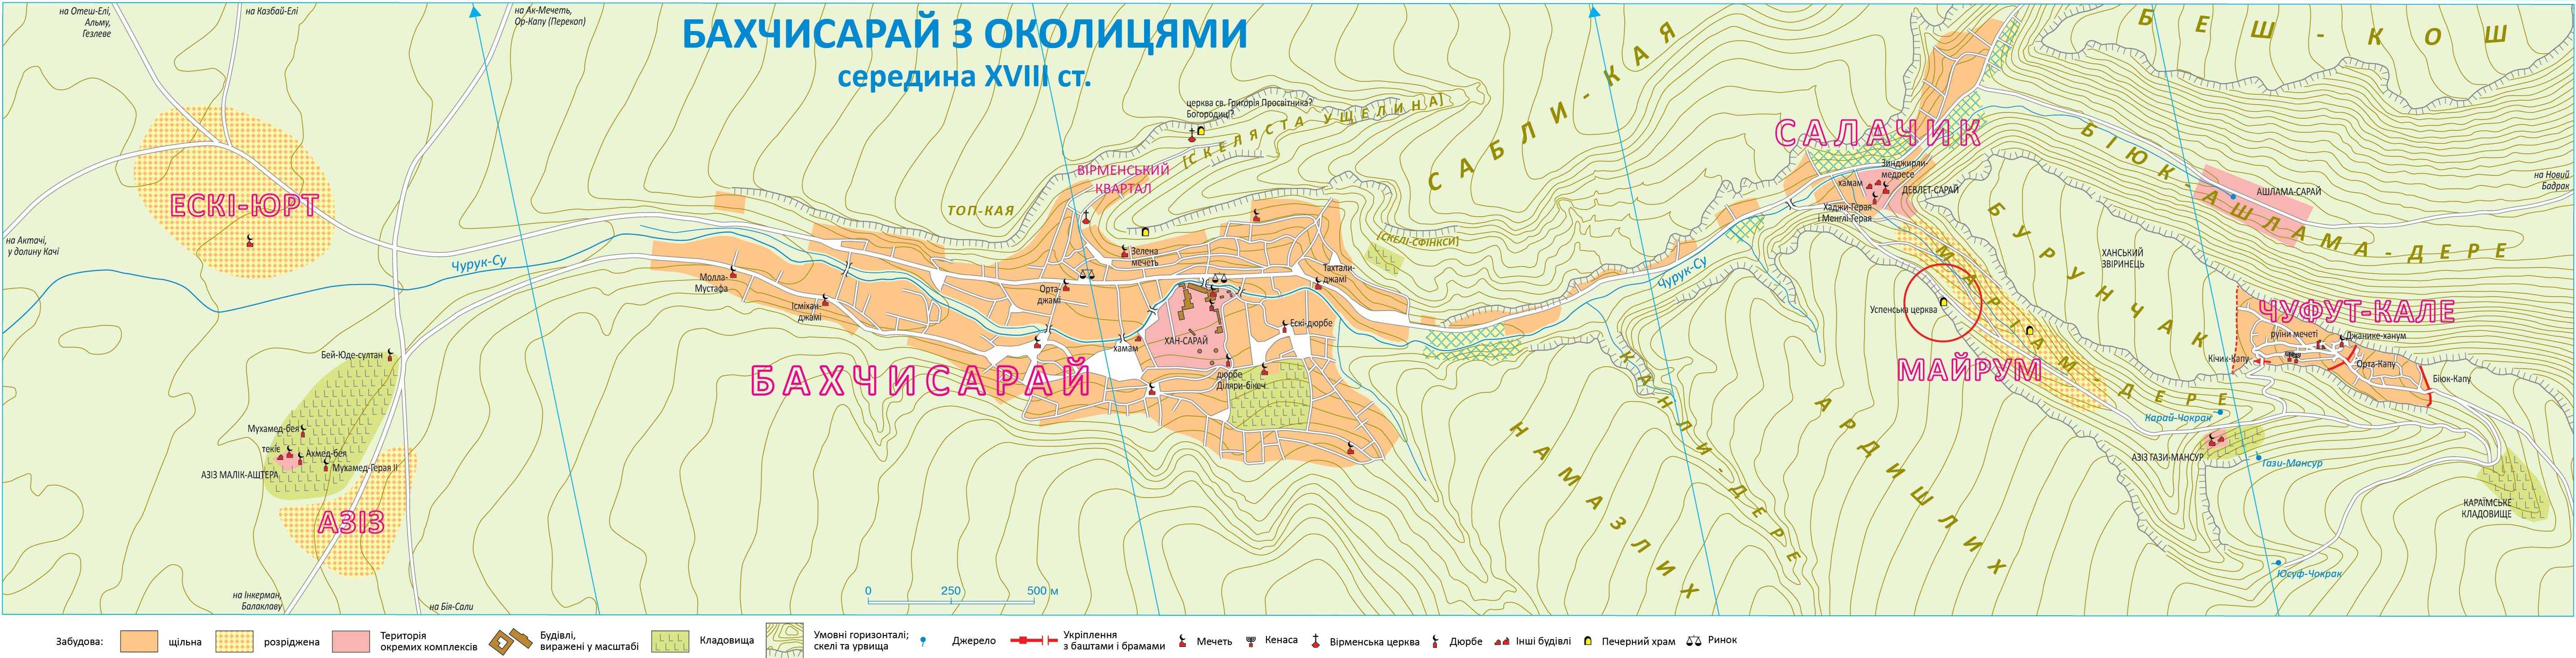 Schematic map of Bakhchisaray environs of 18th century. Designed by Dmitry Vortman in 2015.